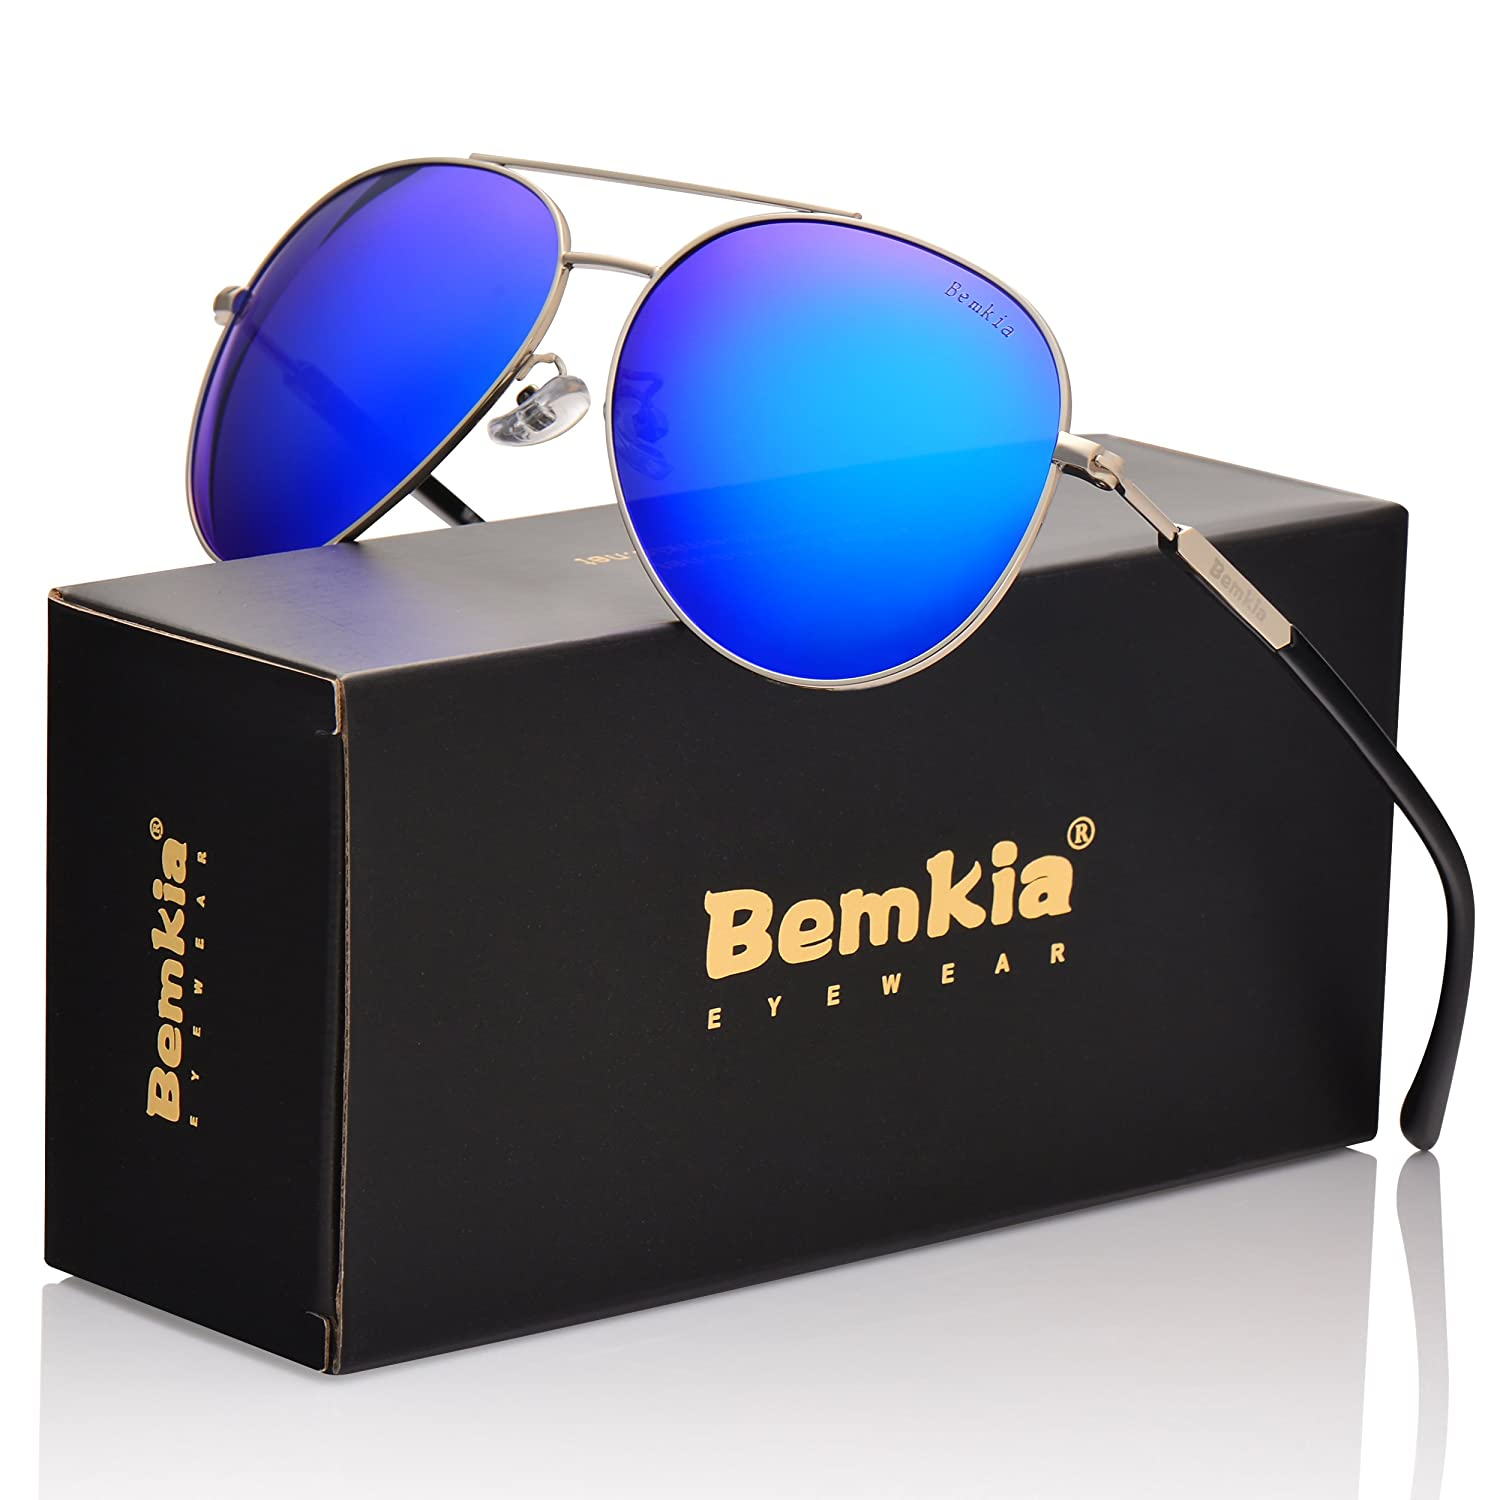 Mens Aviator Polarized Sunglasses for Women UV400 Protection By Bemkia with case 60mm